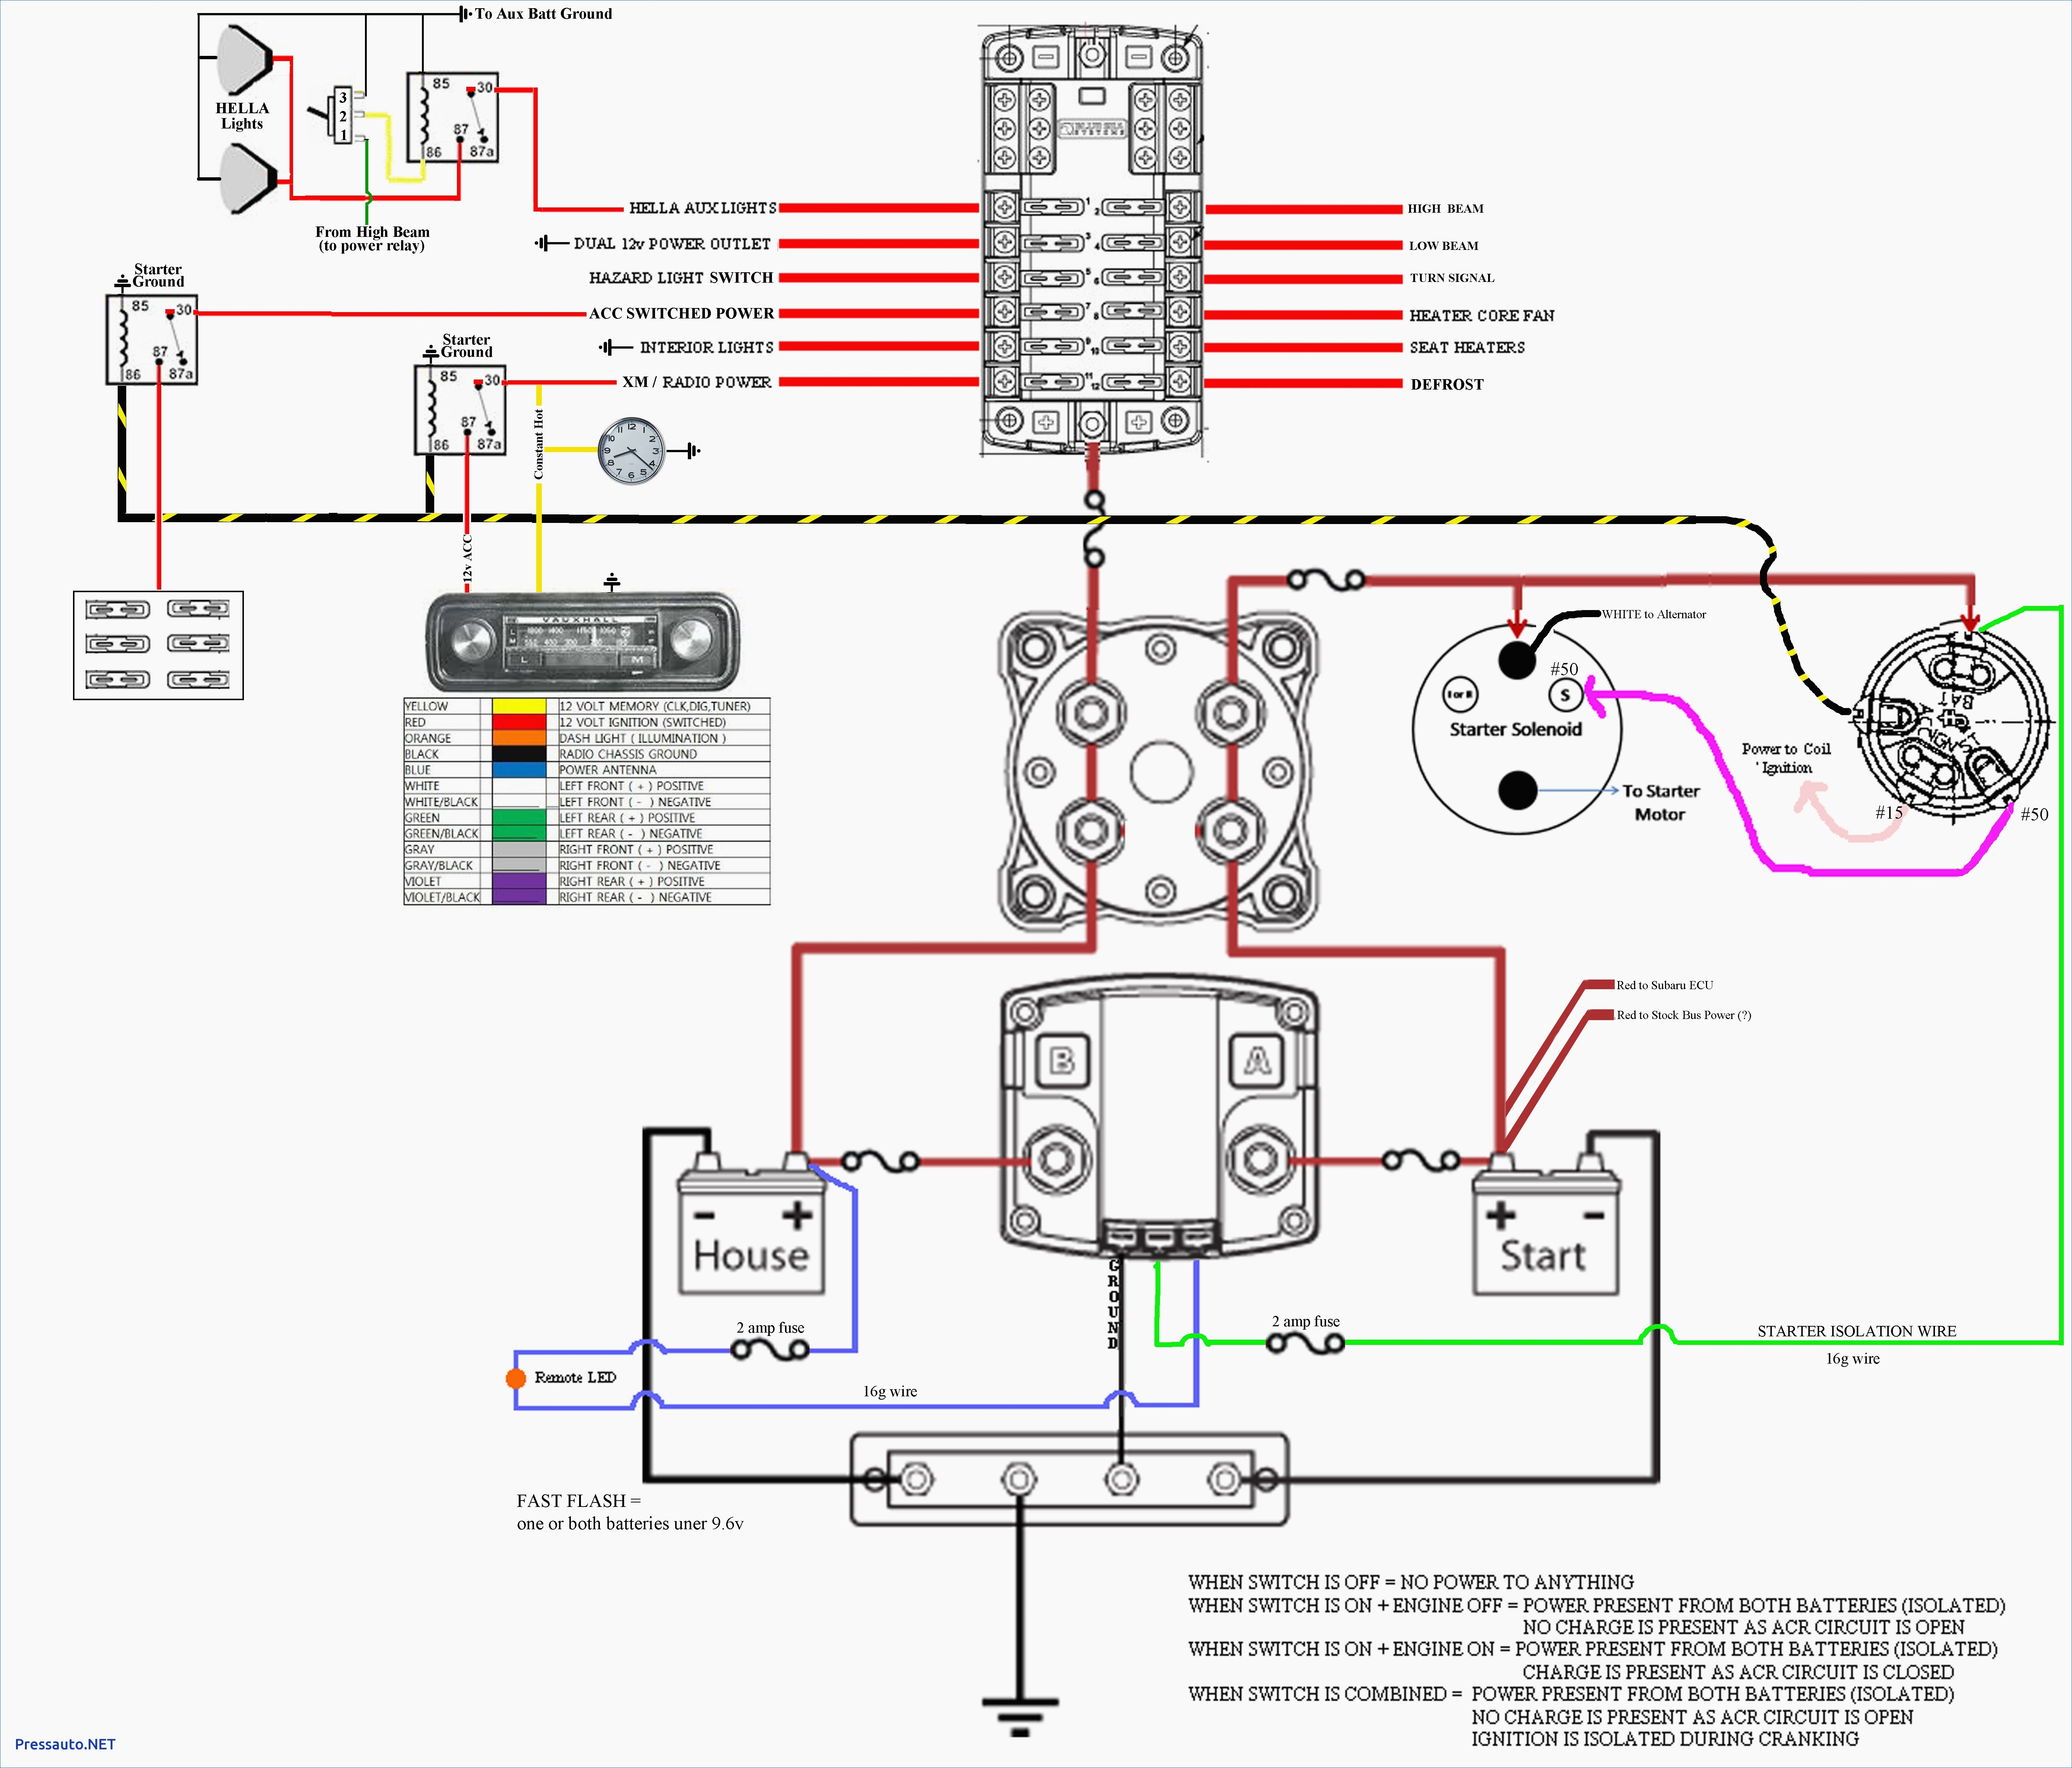 Boat battery wiring diagram boat leisure battery wiring diagram best boat battery wiring diagram marine power wiring diagram wiring diagram of boat battery wiring diagram boat cheapraybanclubmaster Images